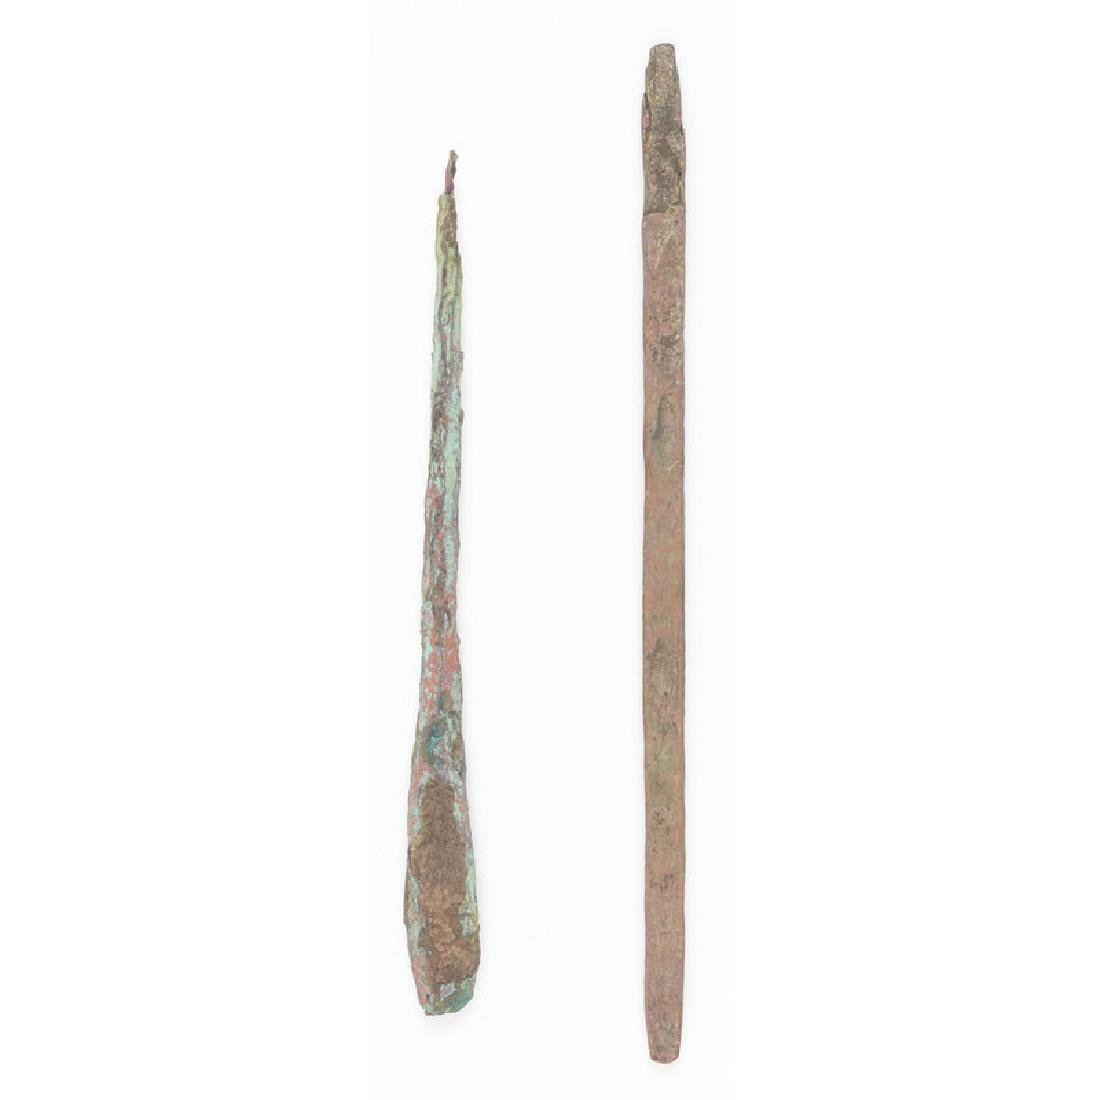 A Pair of Old Copper Culture Awls / Pins